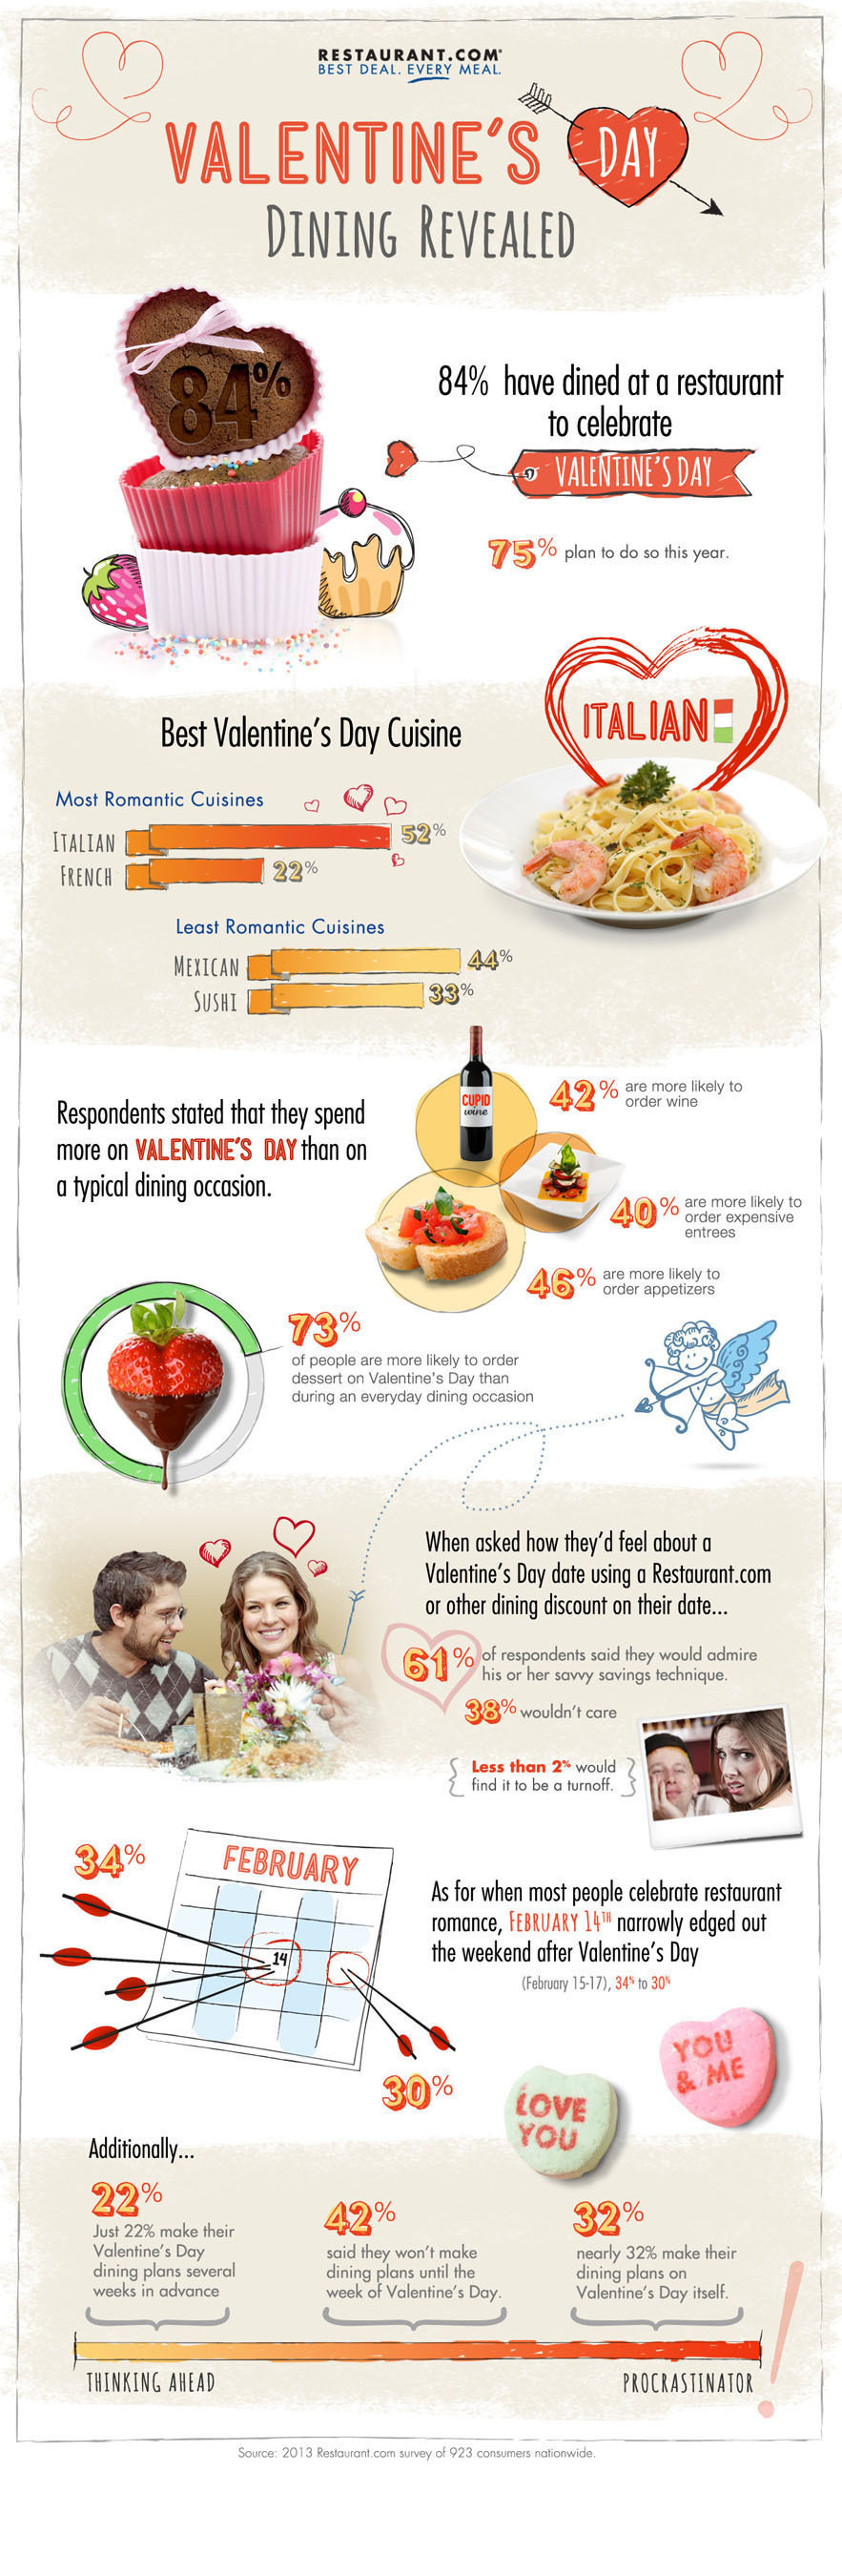 Italian Beats Out French, Fondue As Most Popular Cuisine Choice for Valentine's Day 2013